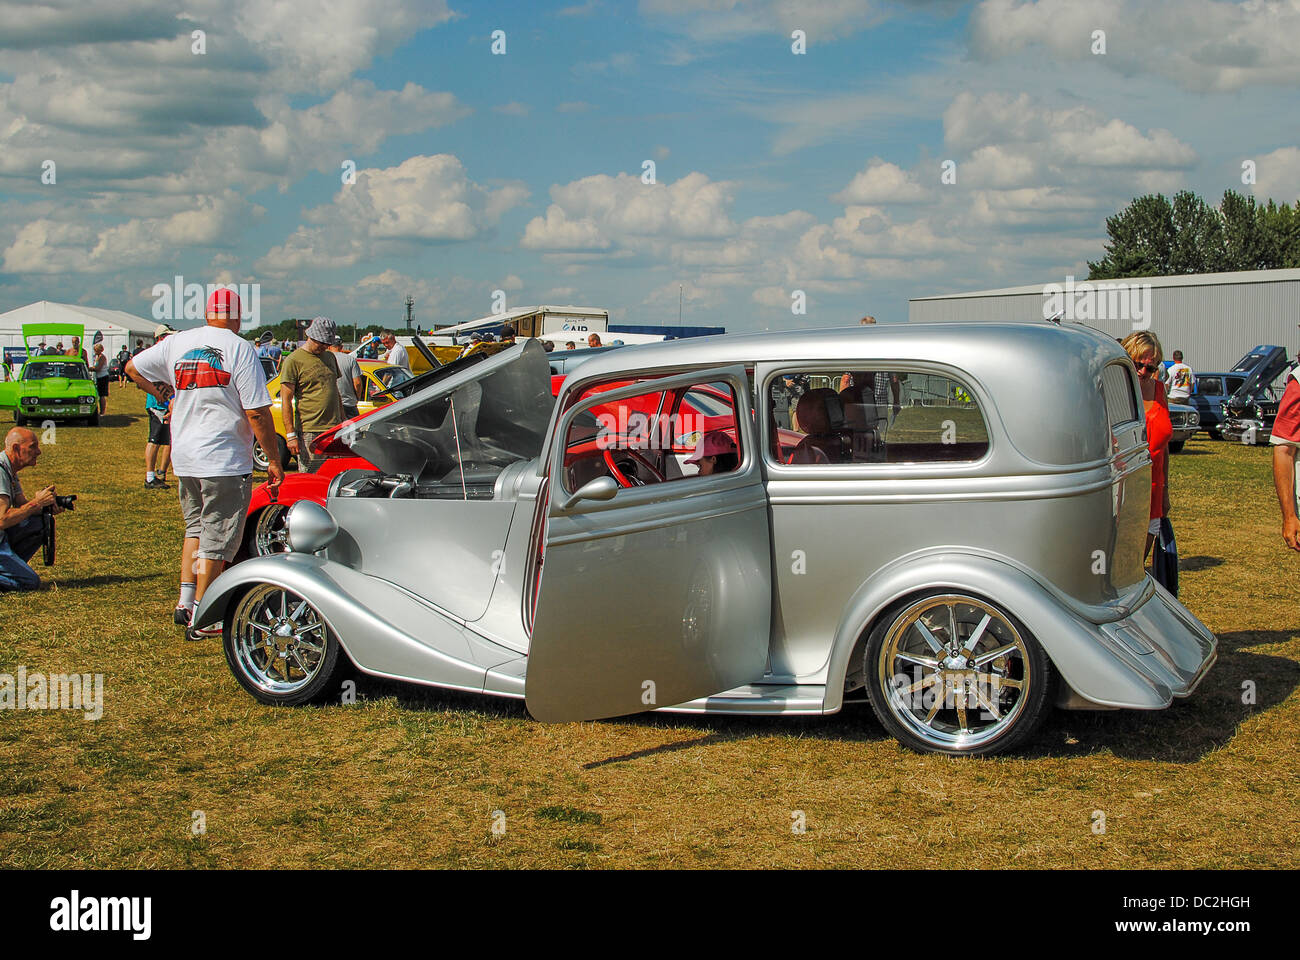 Silver hot rod race car Stock Photo: 59064673 - Alamy